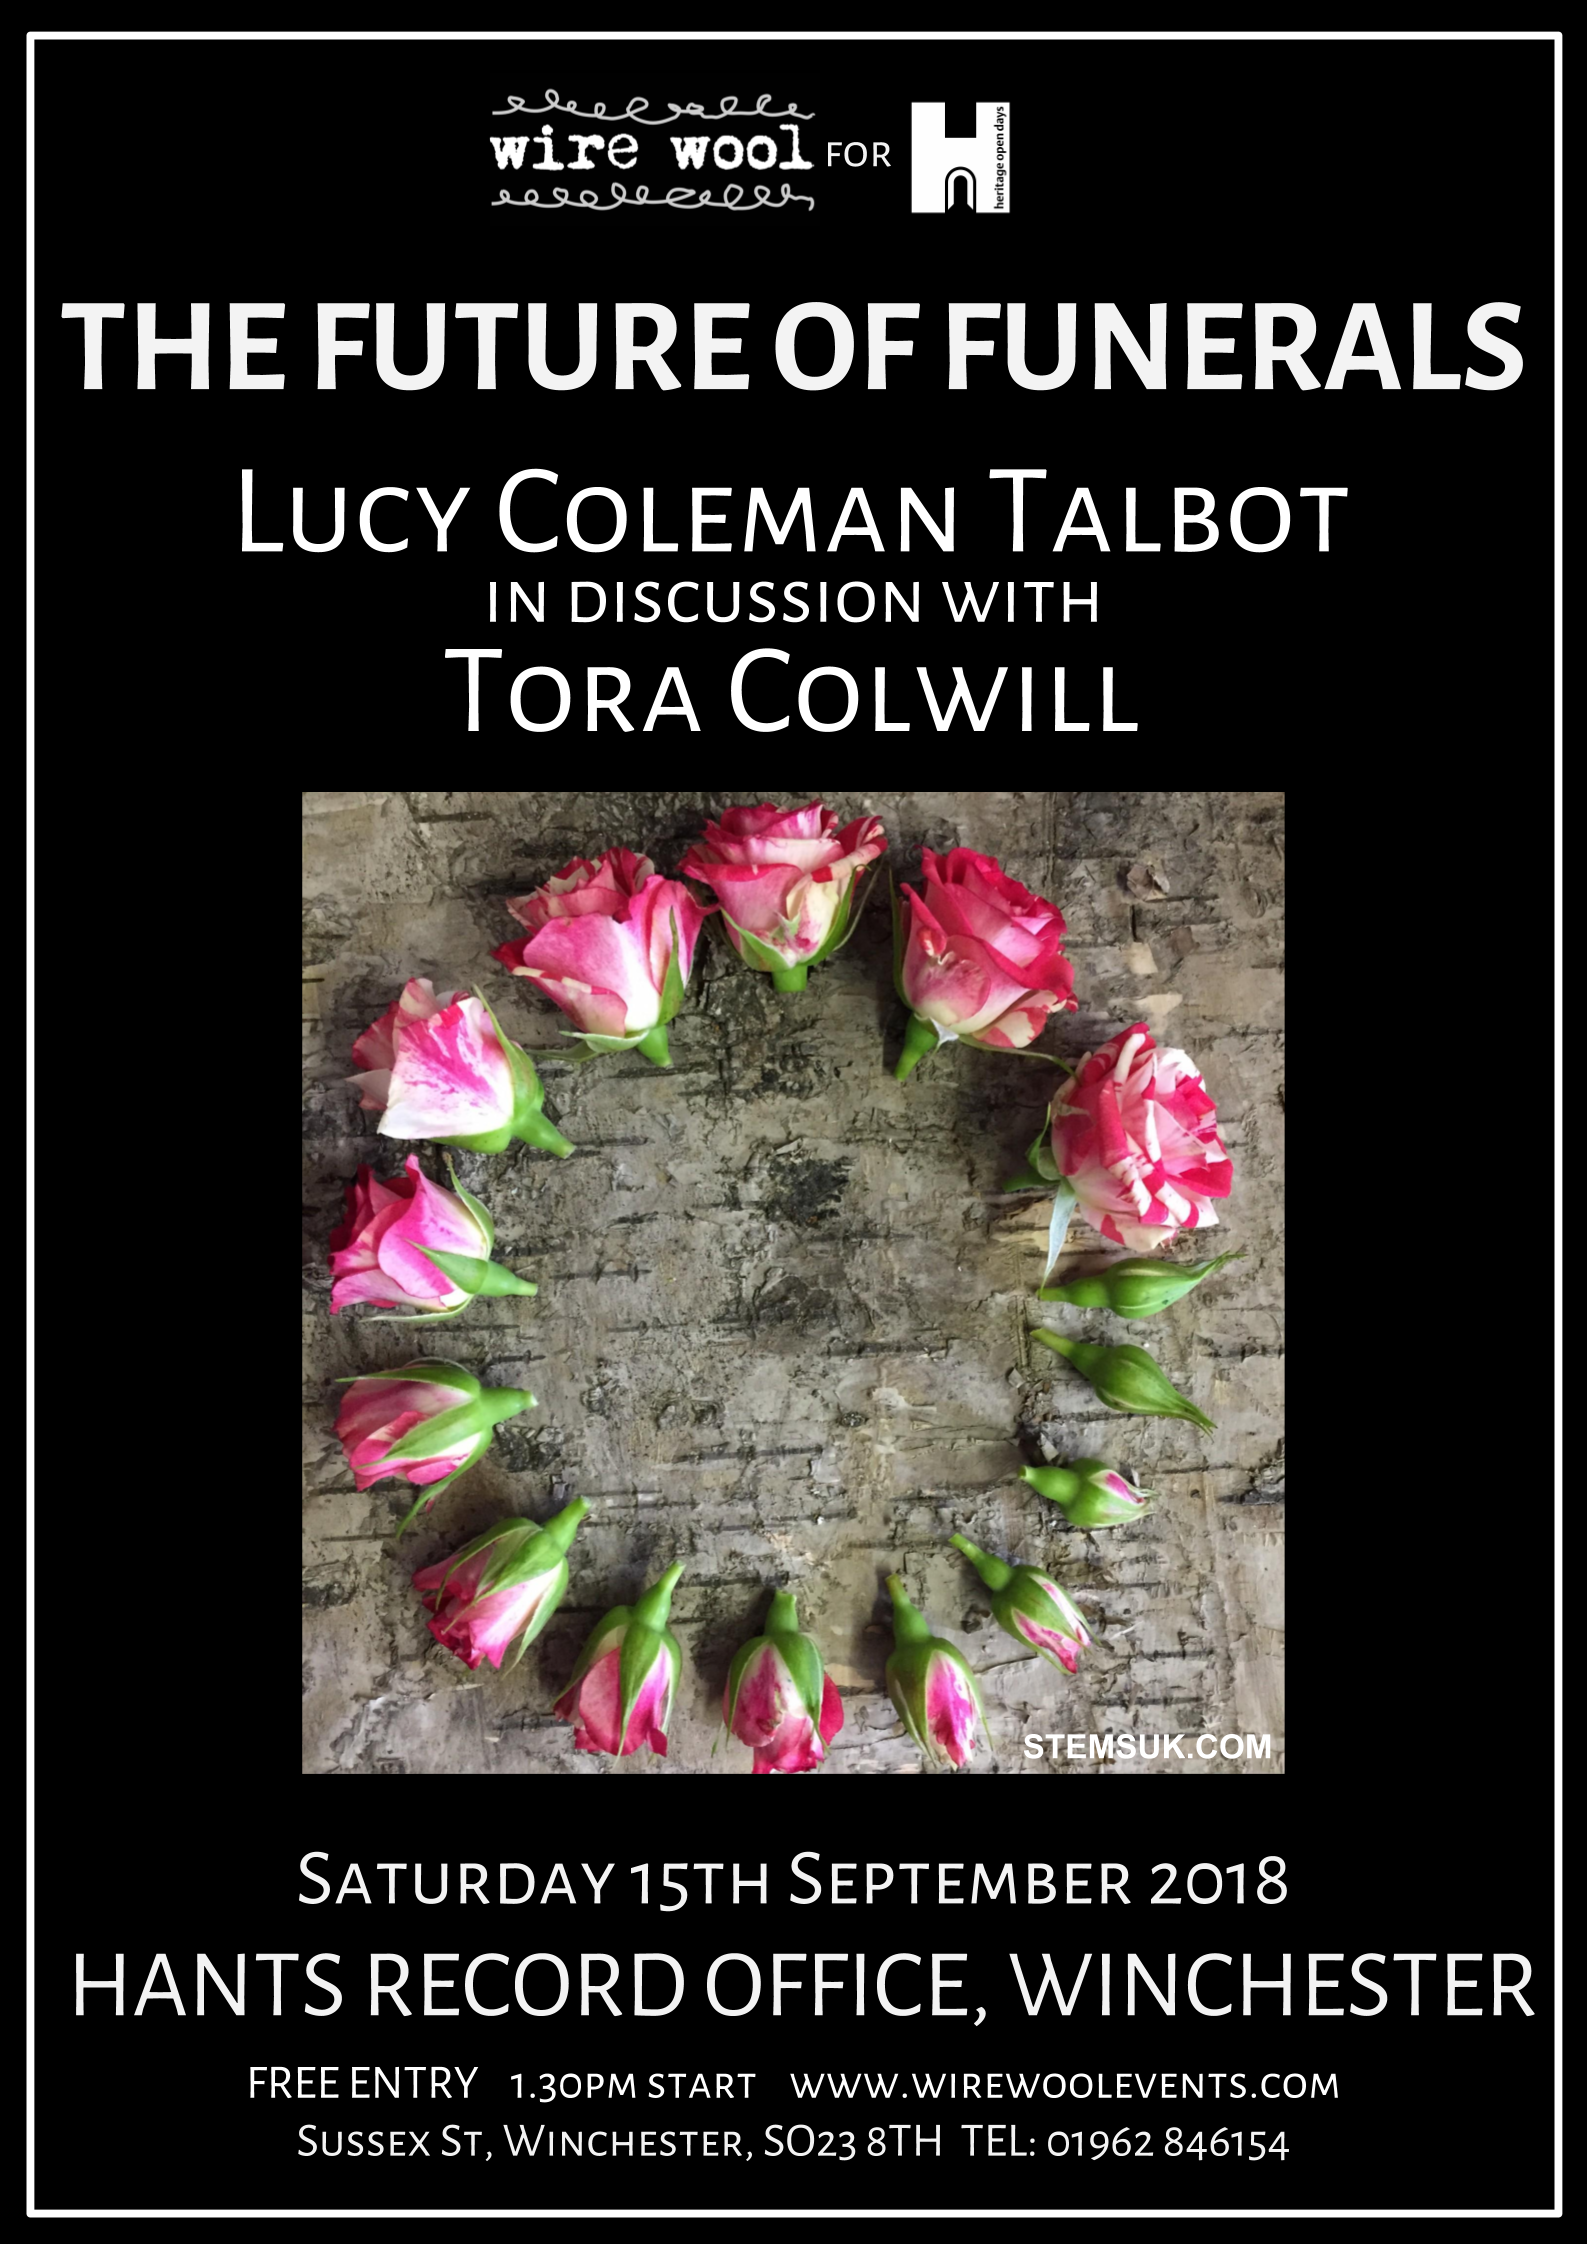 Future Of Funerals: Lucy Coleman-Talbot and Tora Colwill  Saturday, September 15, 2018 1:30pm Hampshire Record Office